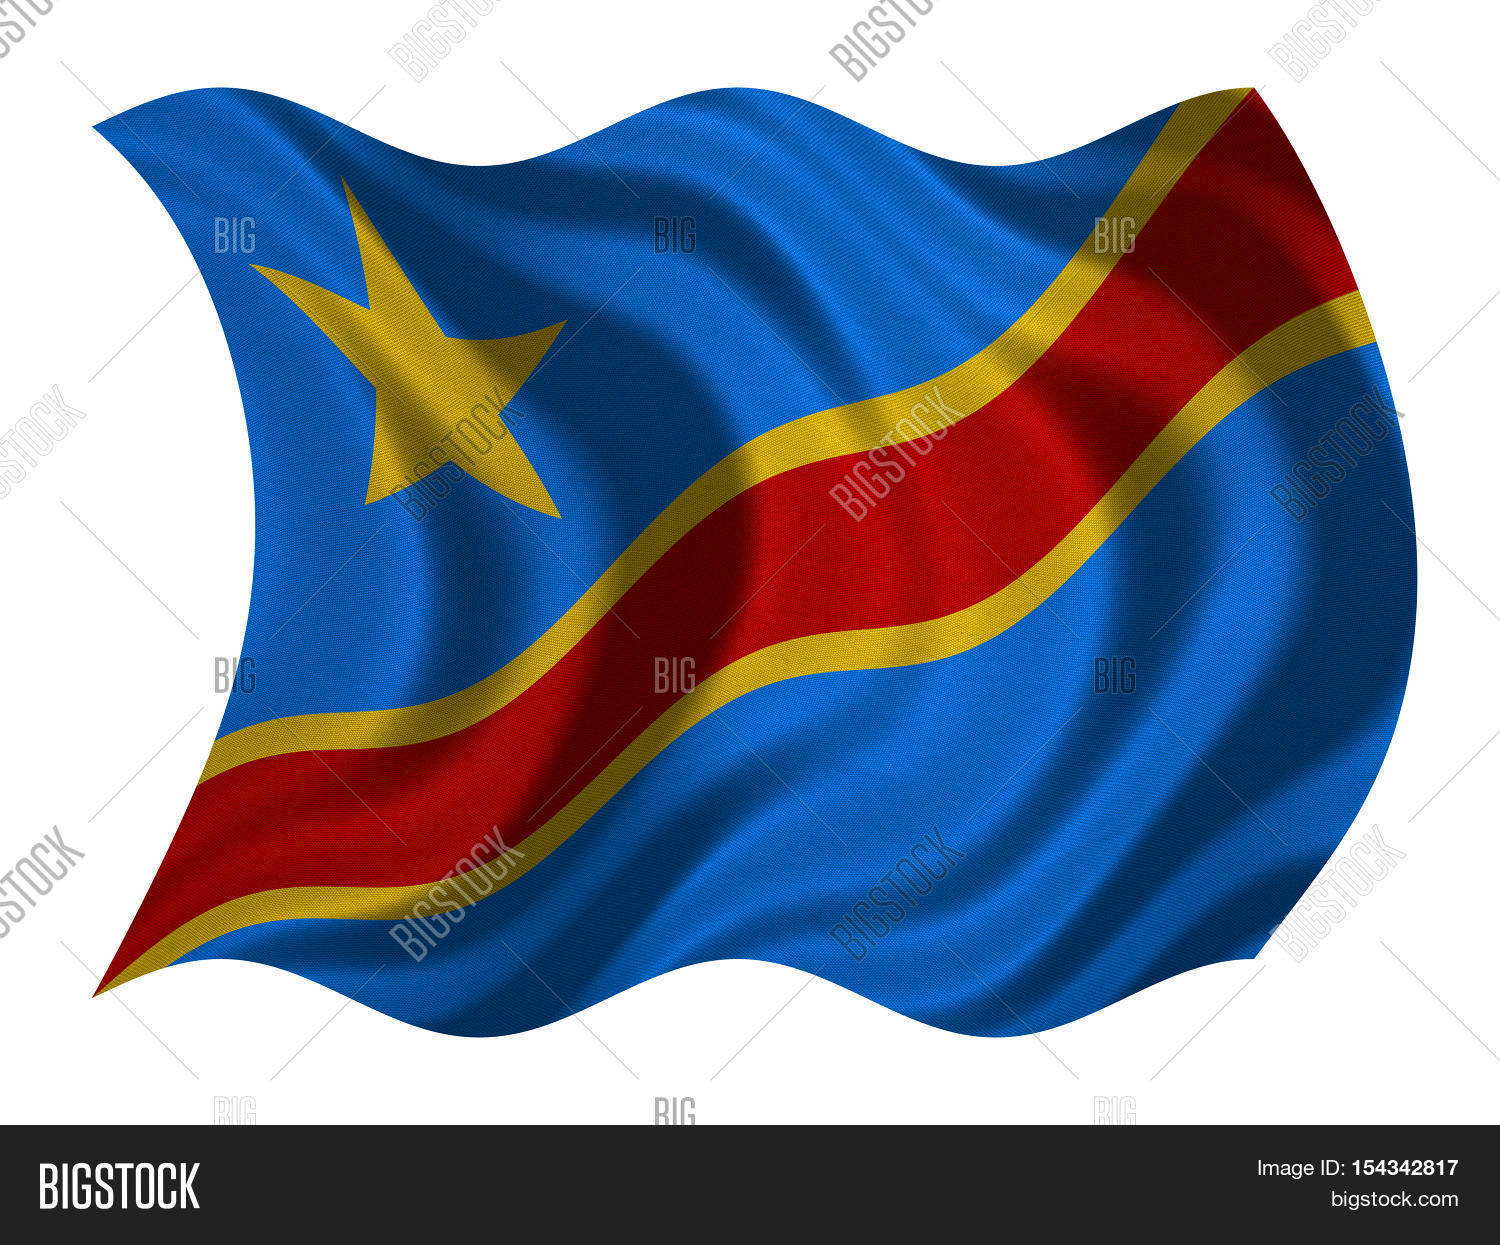 DR Congo National Image & Photo (Free Trial) | Bigstock